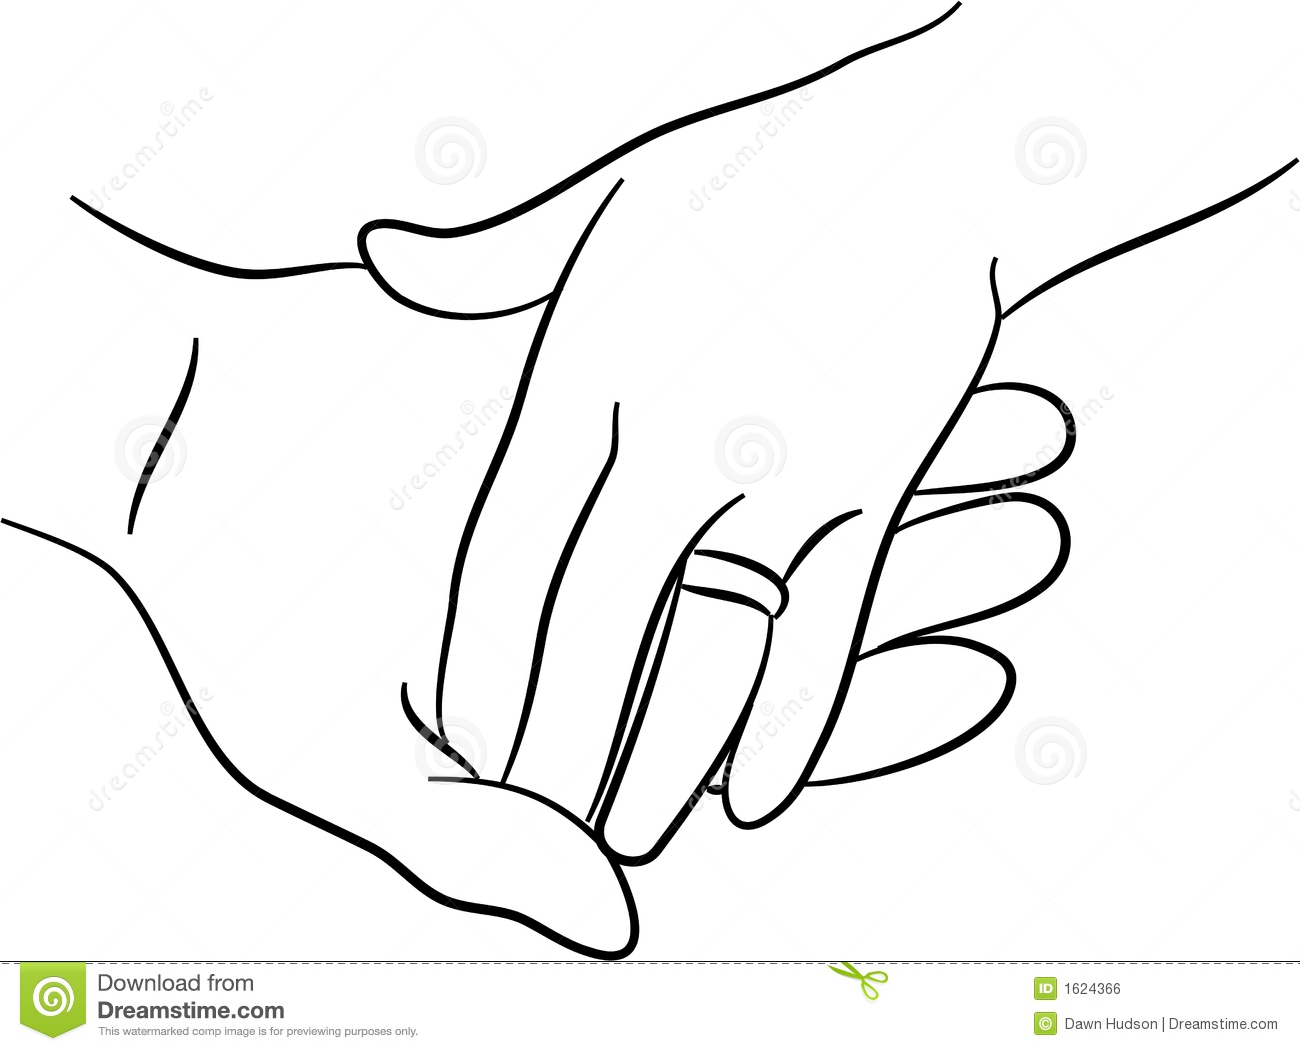 Touching hands stock illustration. Illustration of safety